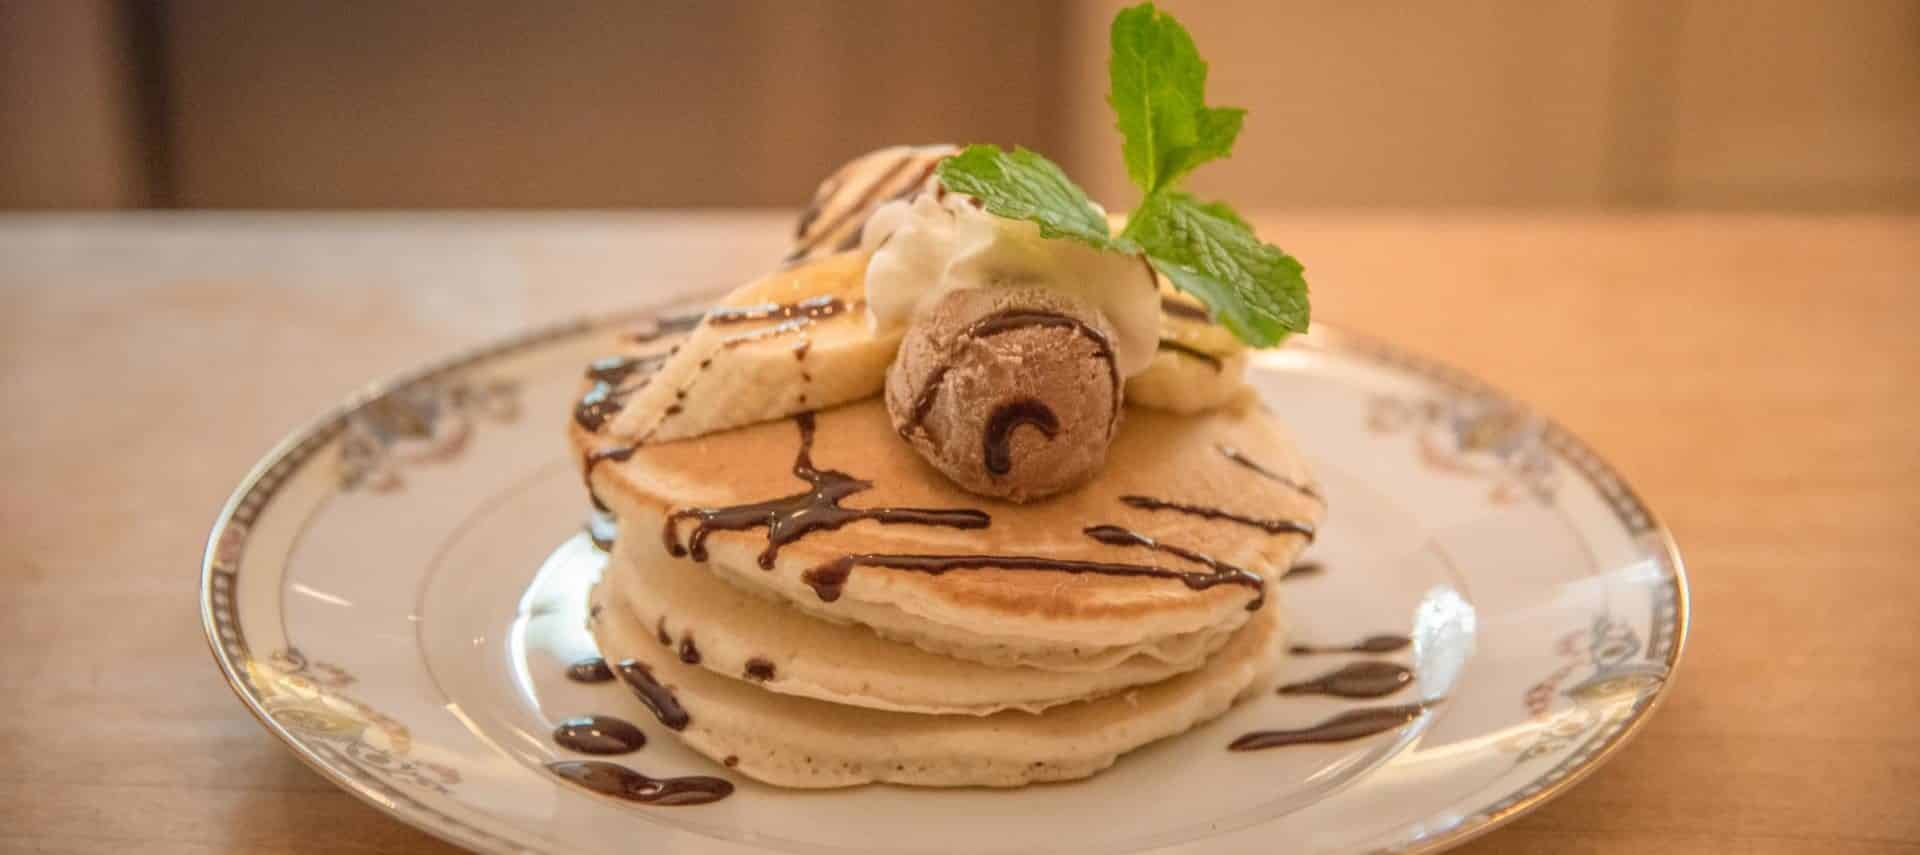 Close up view of a large stack of pancakes with sliced bananas, chocolate drizzle, and mint sprig